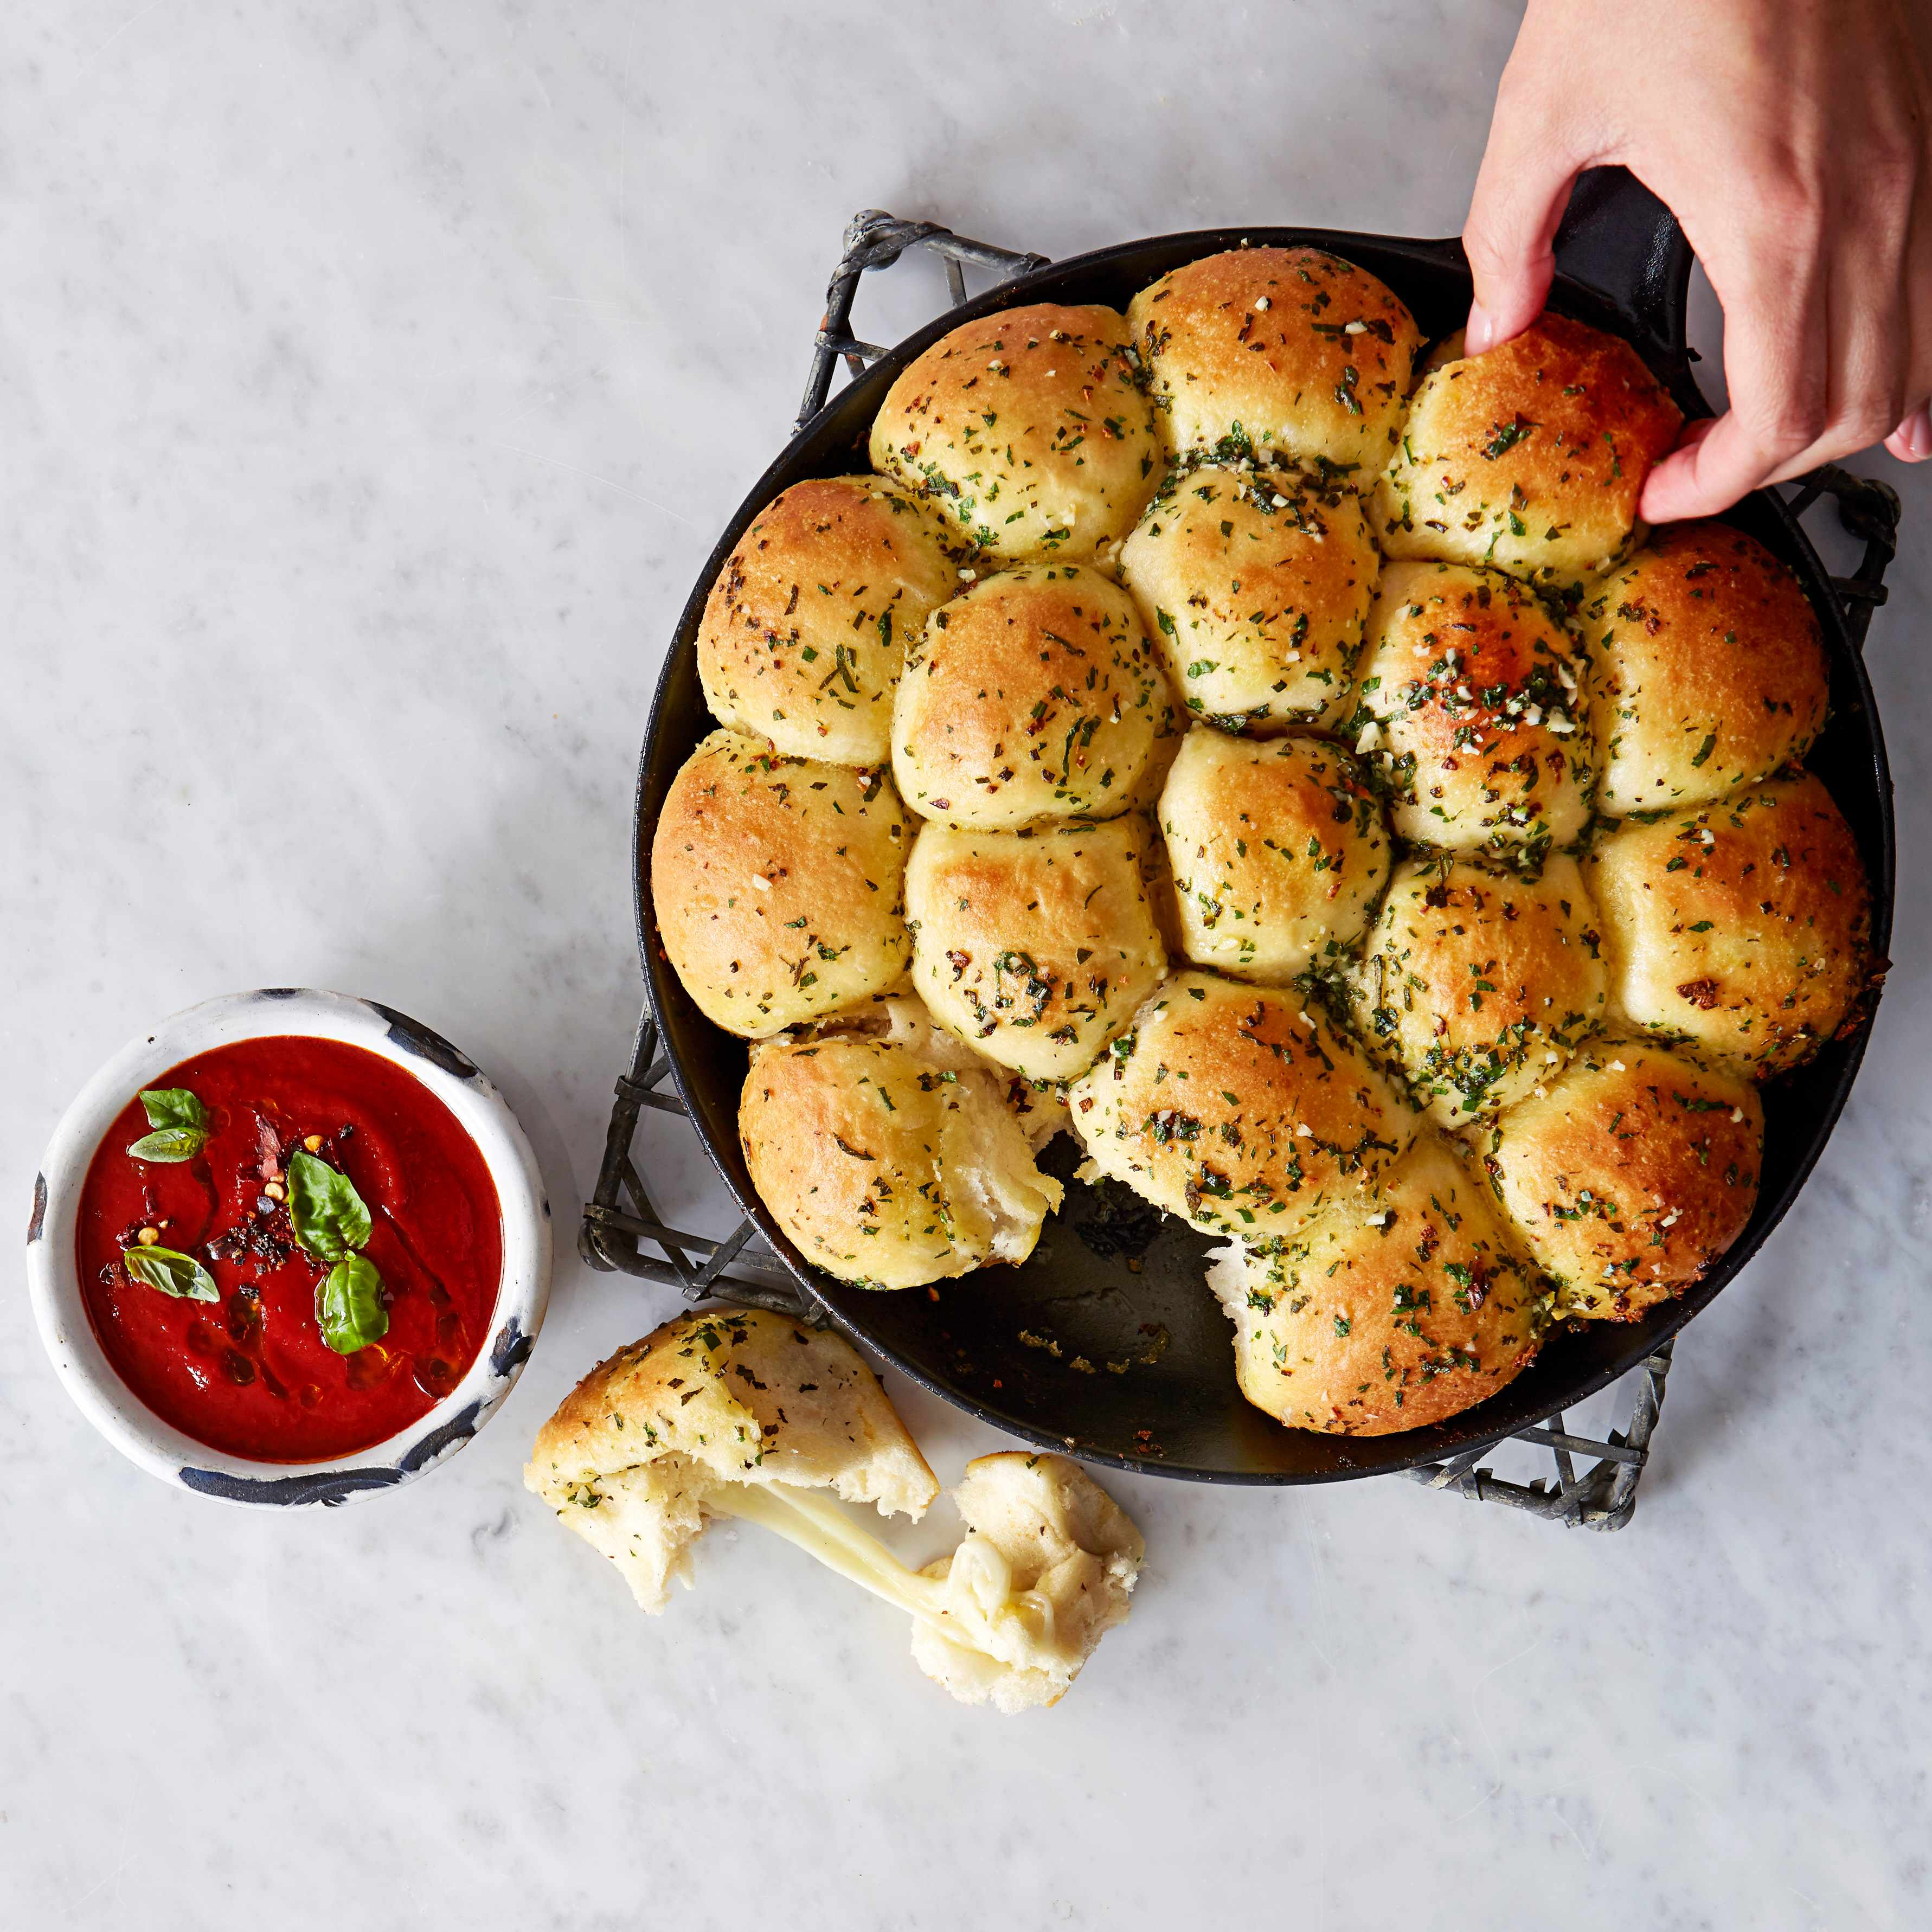 Cheesy garlic dough balls